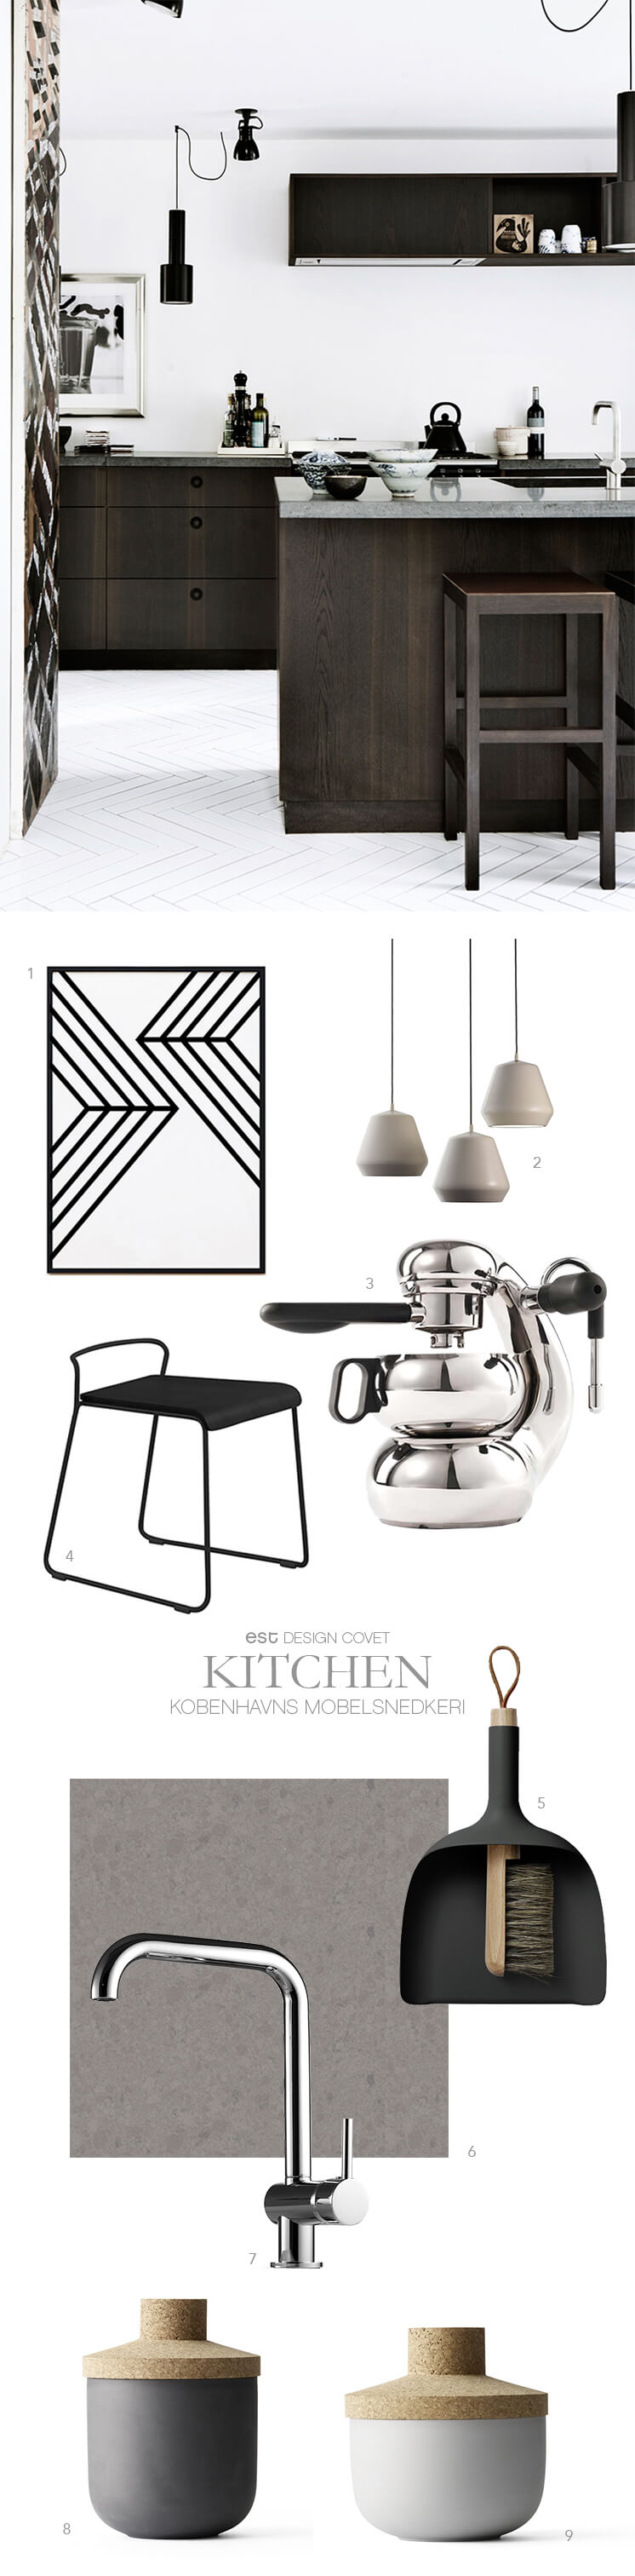 Est-Magazine-Kobenhavns Mobelsnedkeri Kitchen 'Get the look'